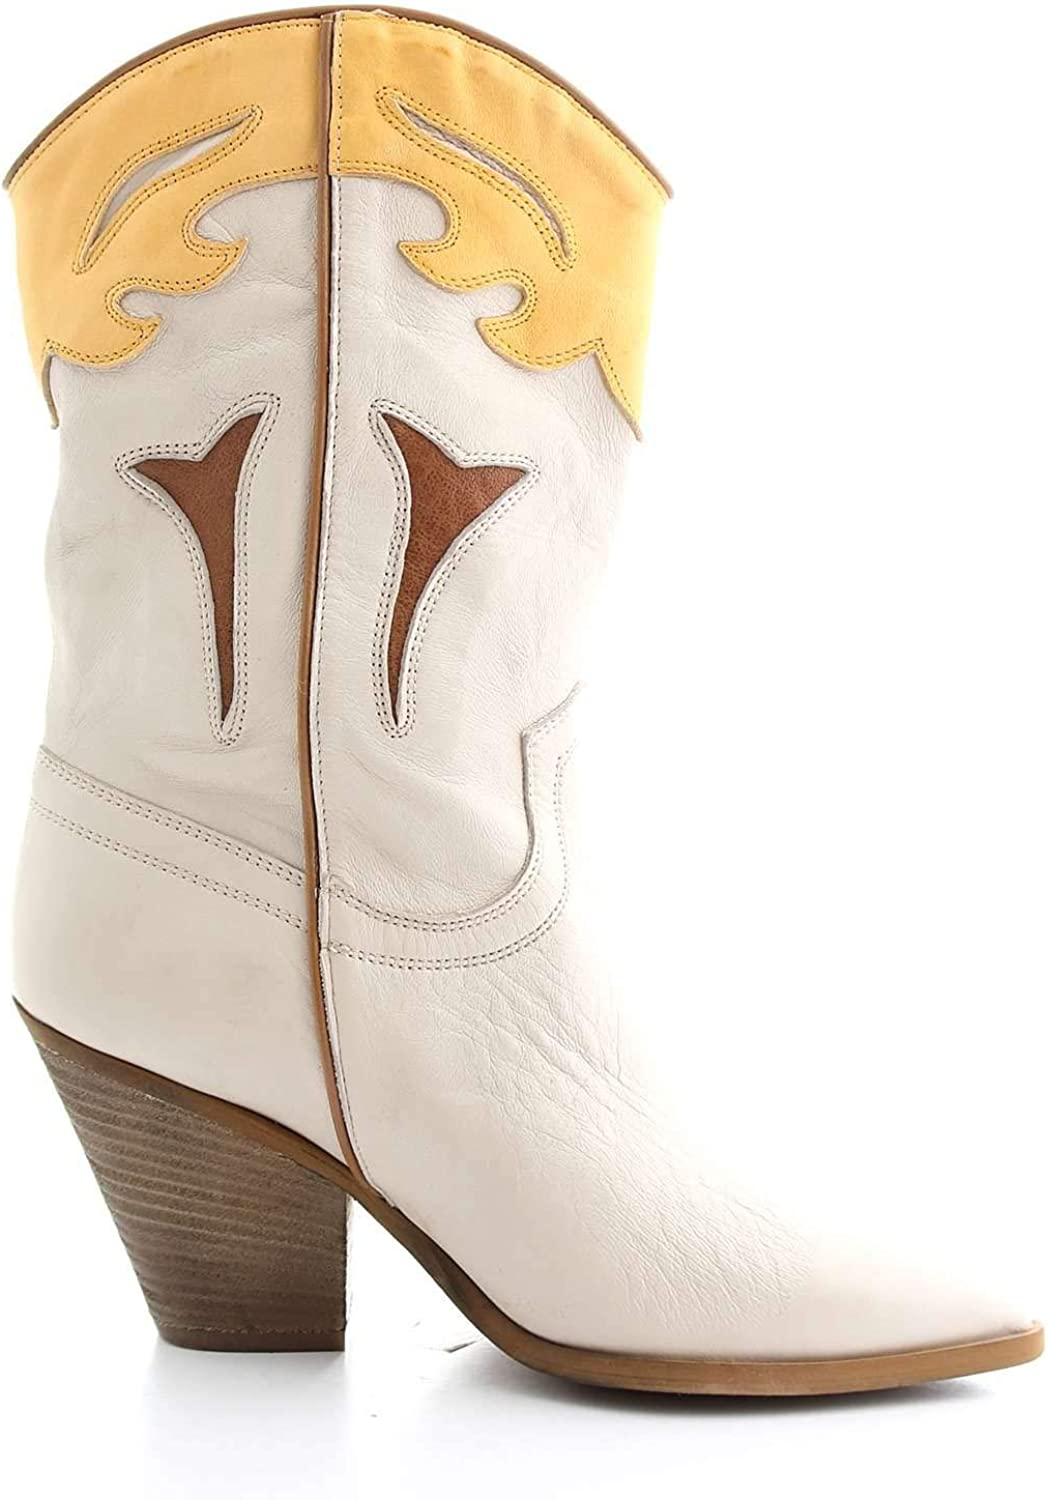 LEQARANT Women's 9033BEIGE Beige Leather Ankle Boots